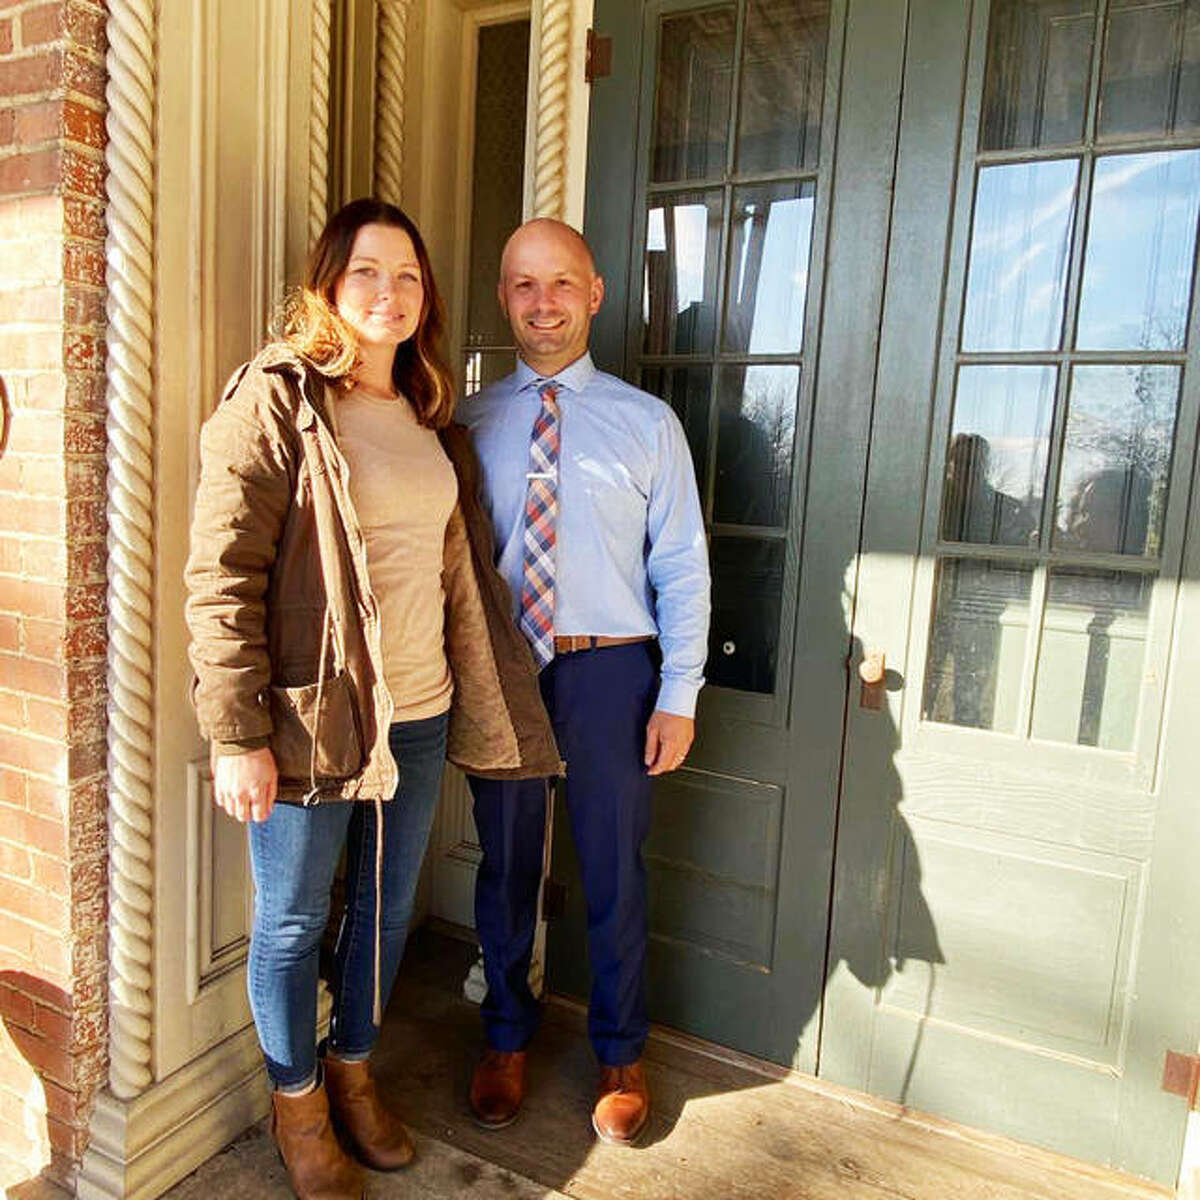 Brittany and Bobby Weller, the new owners of Walnut Hall Estate in Carrollton, are preparing to open the site as an all-inclusive wedding venue this spring.